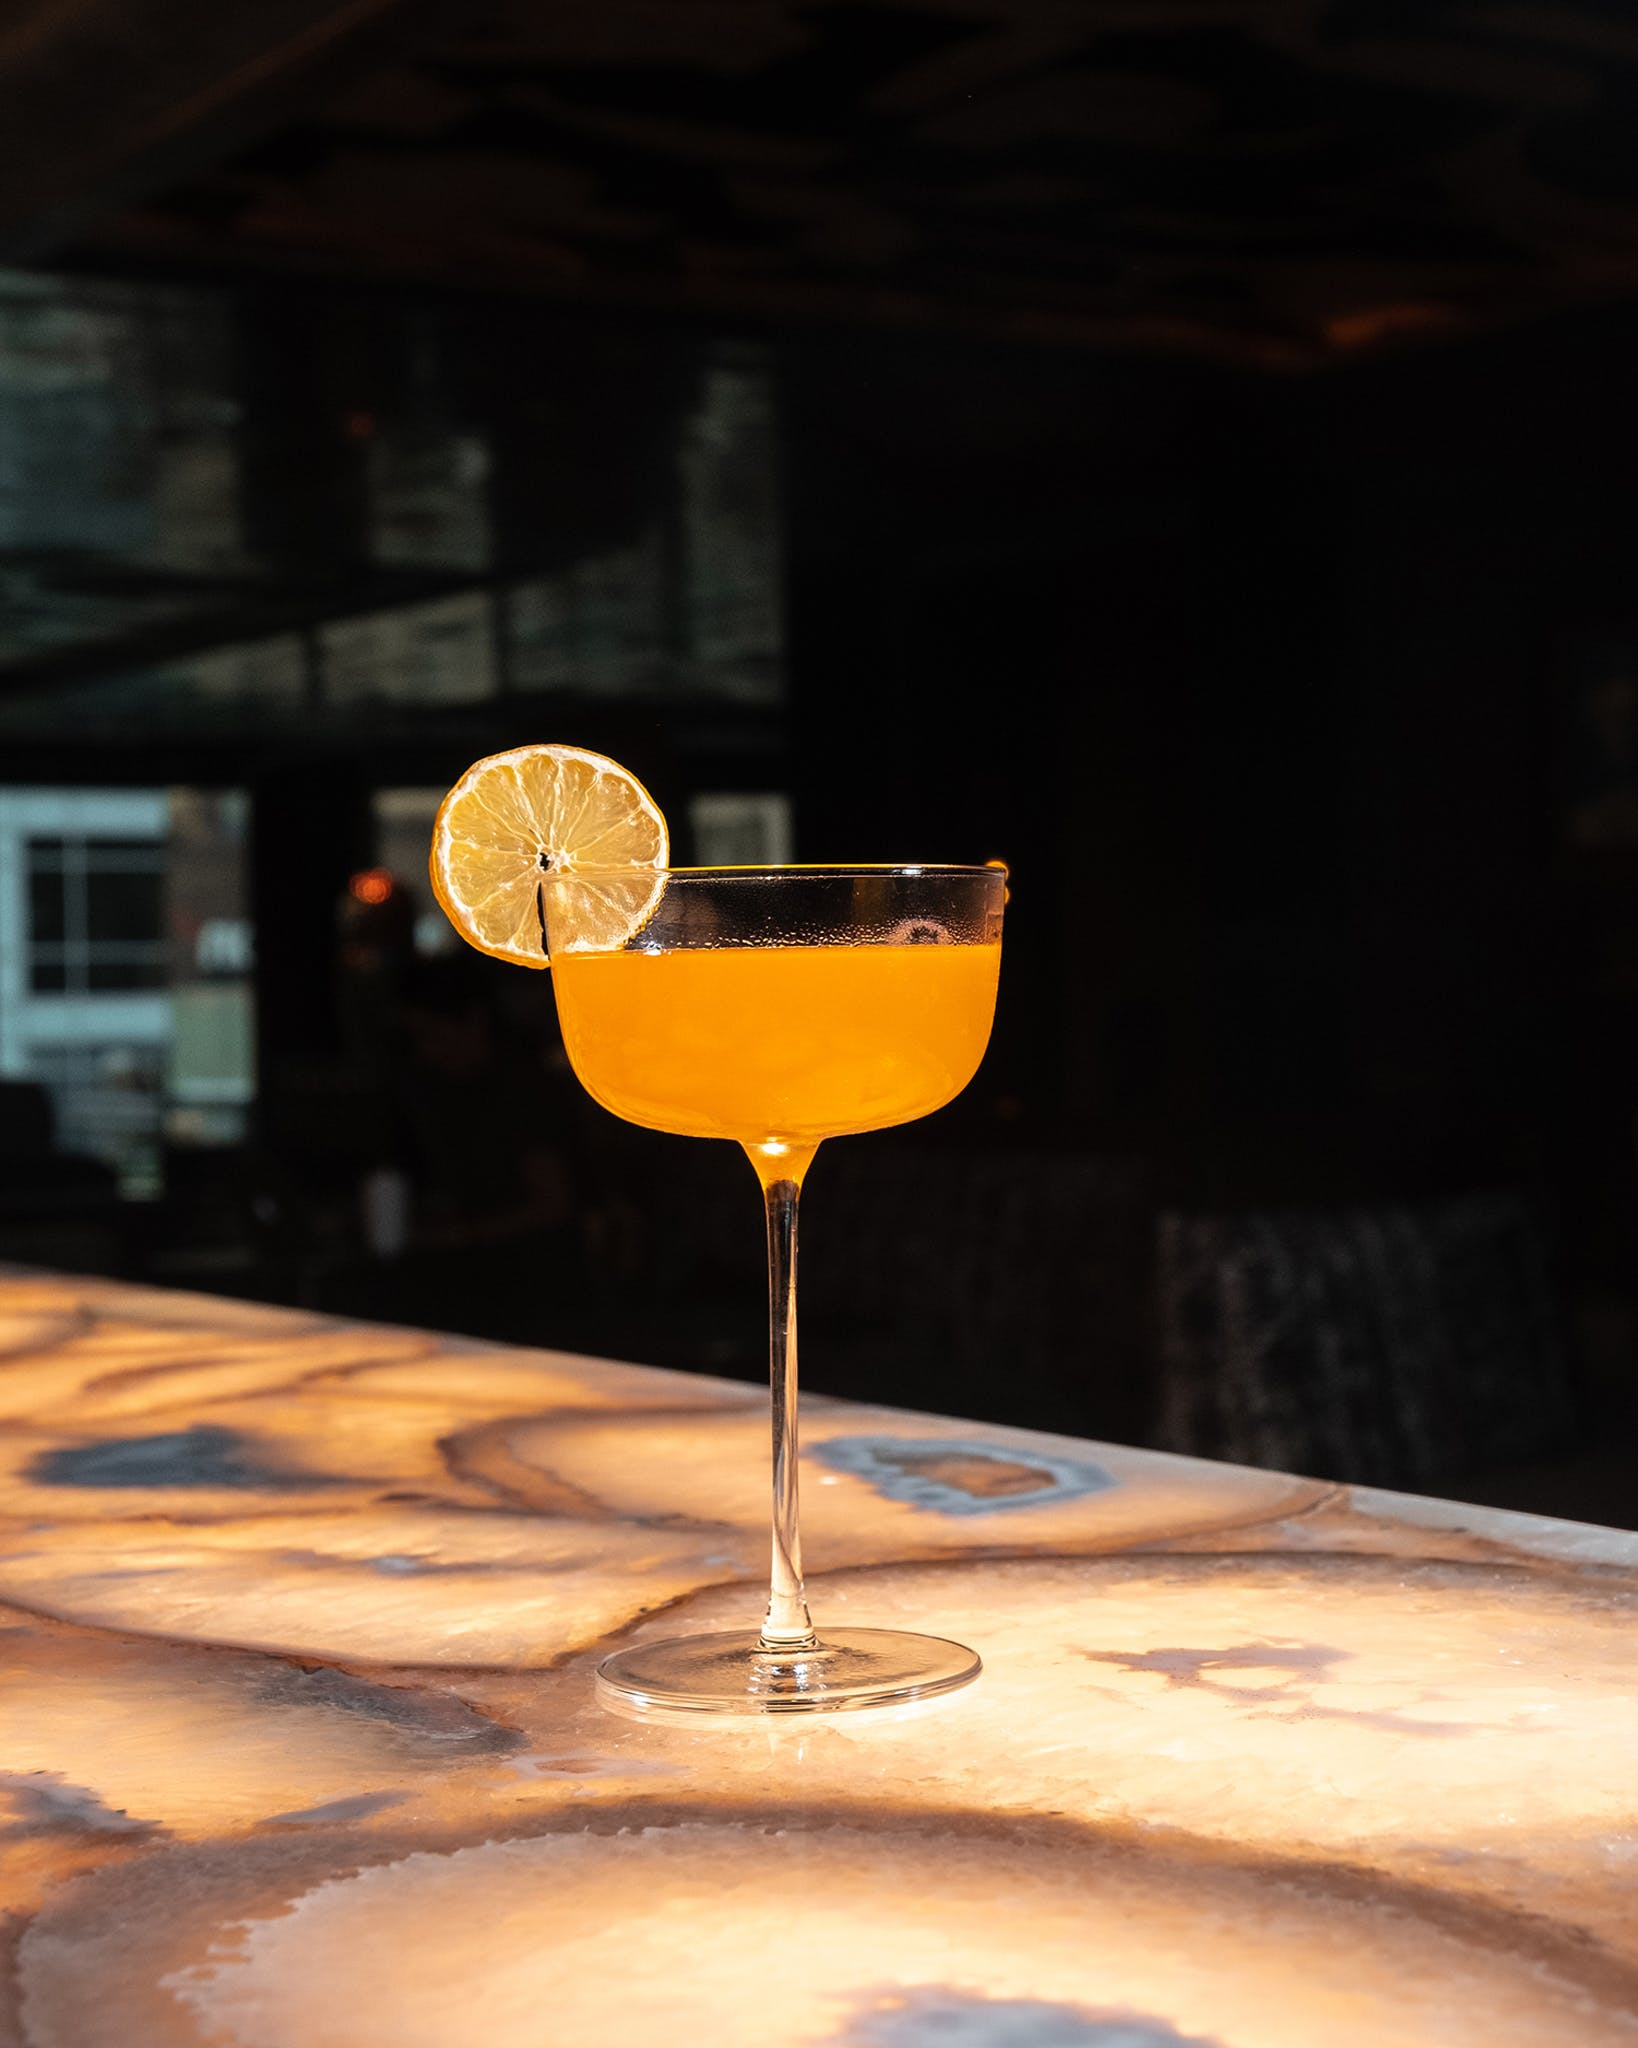 The bar counter, an agate wonder from Italian stone dealer Antolini, is almost too pretty to cover up with cocktails like this signature daiquiri, which is made with rum, Aperol, lime, and mango.